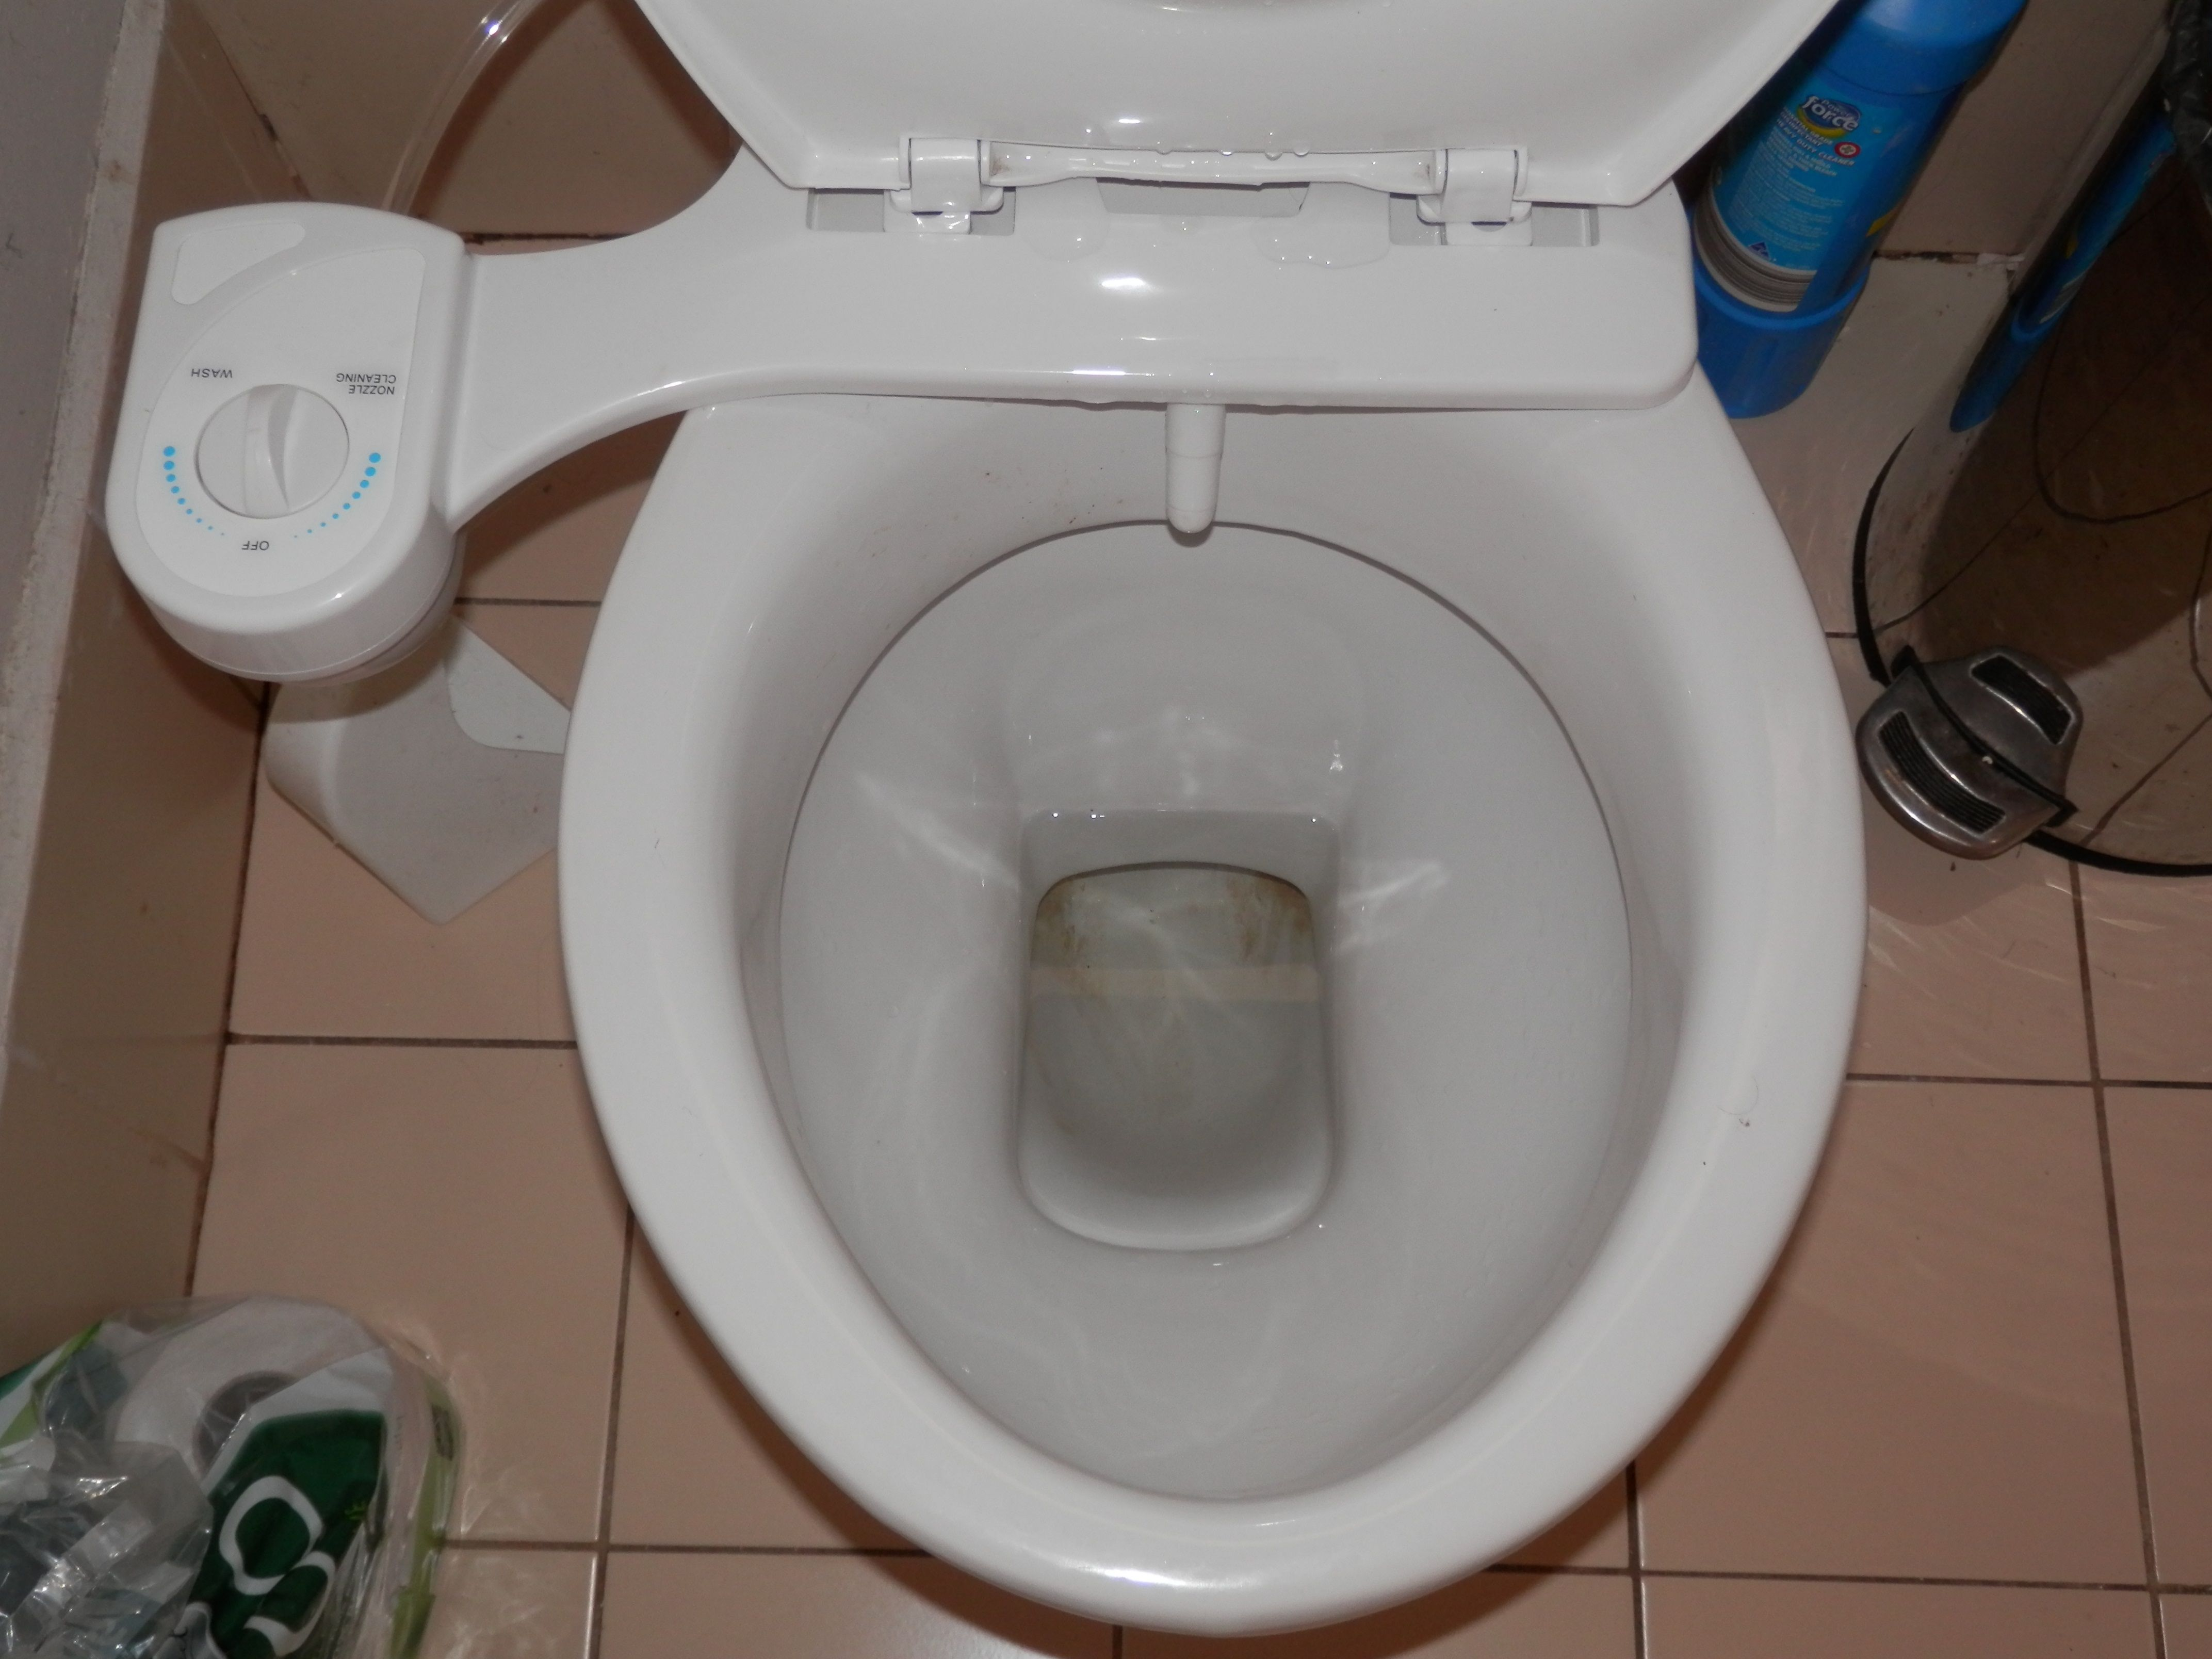 Bidet Toilets The Hygienic Alternative That Cured My Fissures